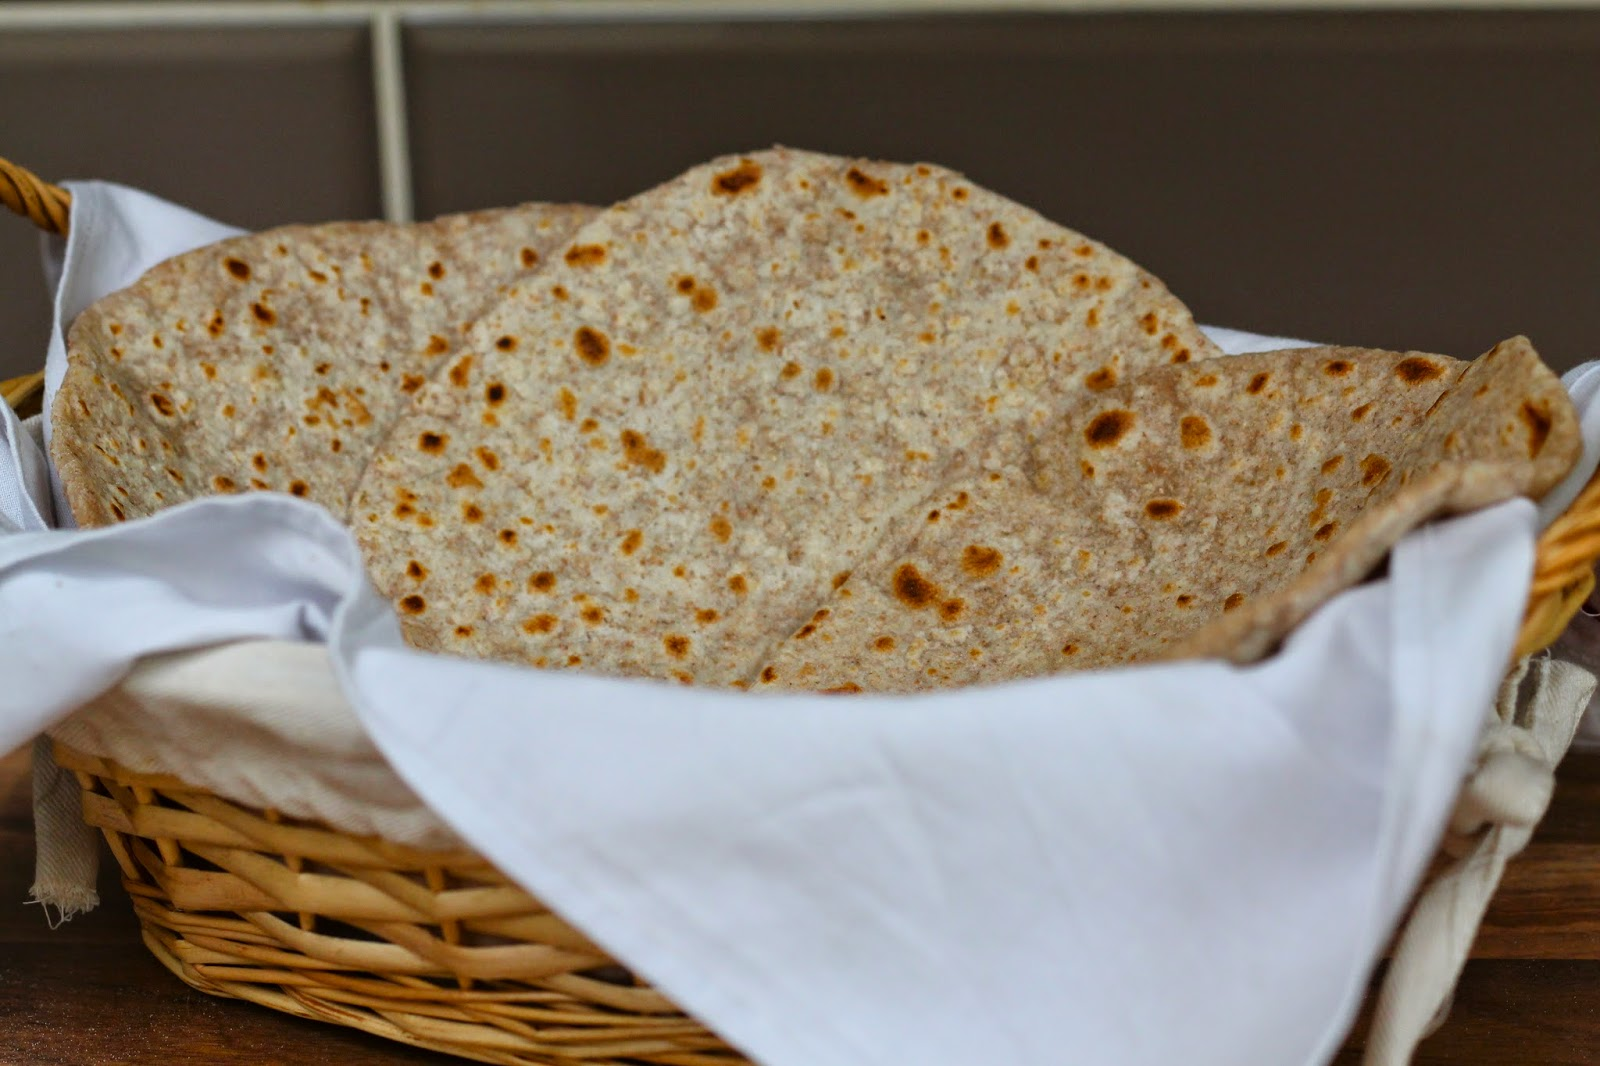 Bread basket of cooked roti/chapatti